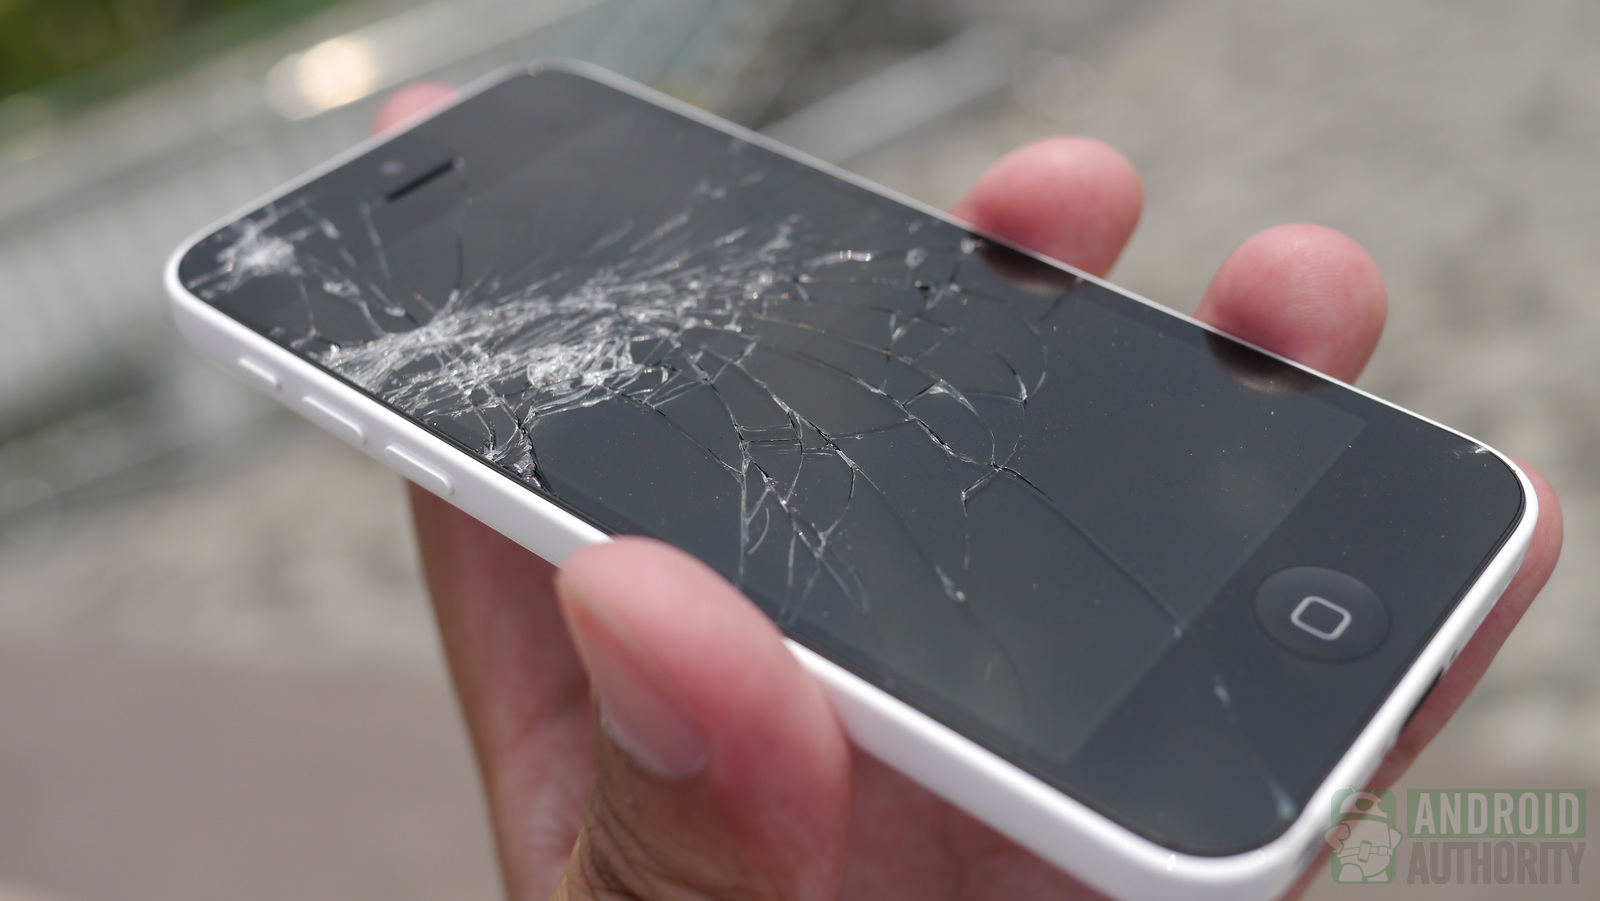 Cracked Back Of Iphone